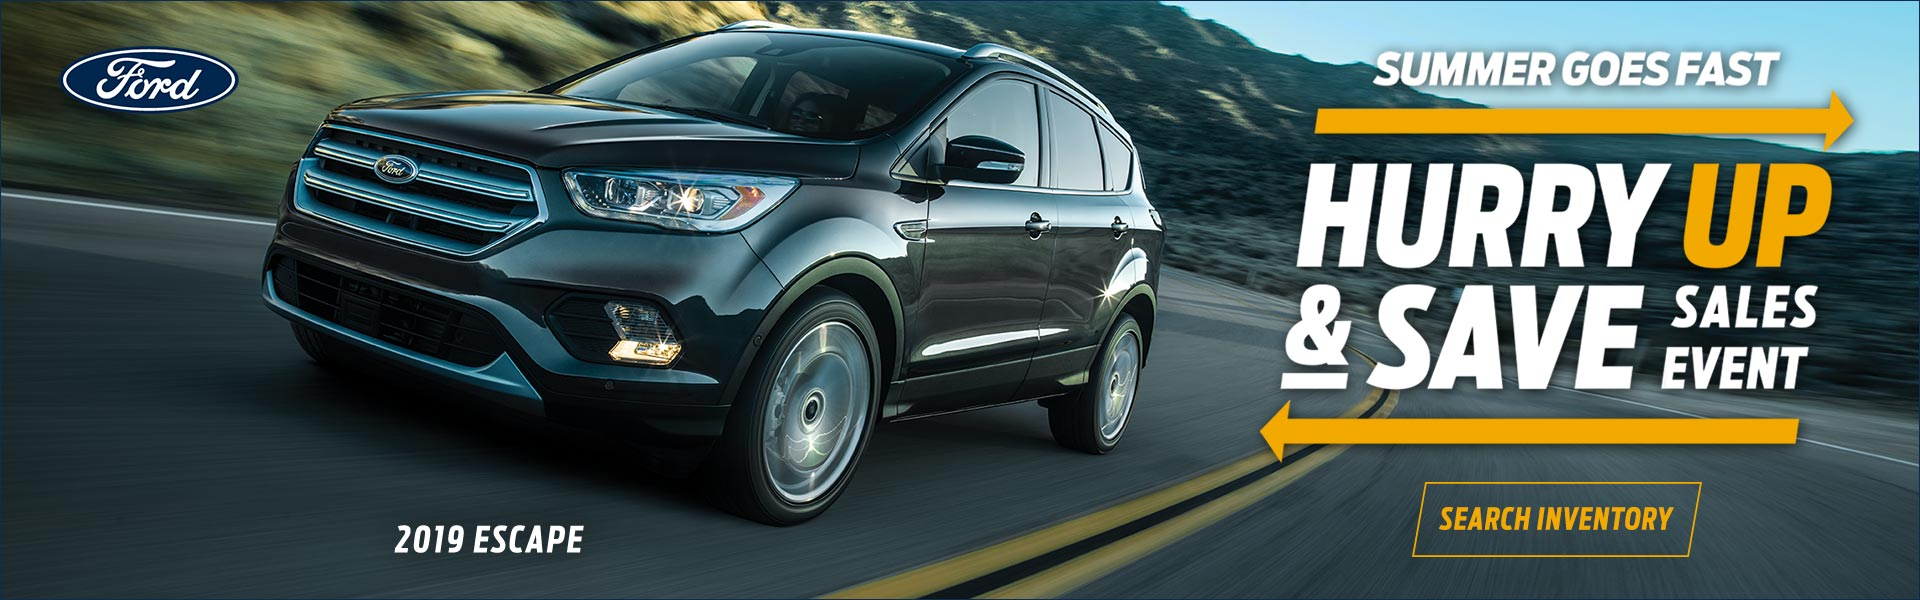 Ford Dealer in Mayfield Heights, OH | Used Cars Mayfield